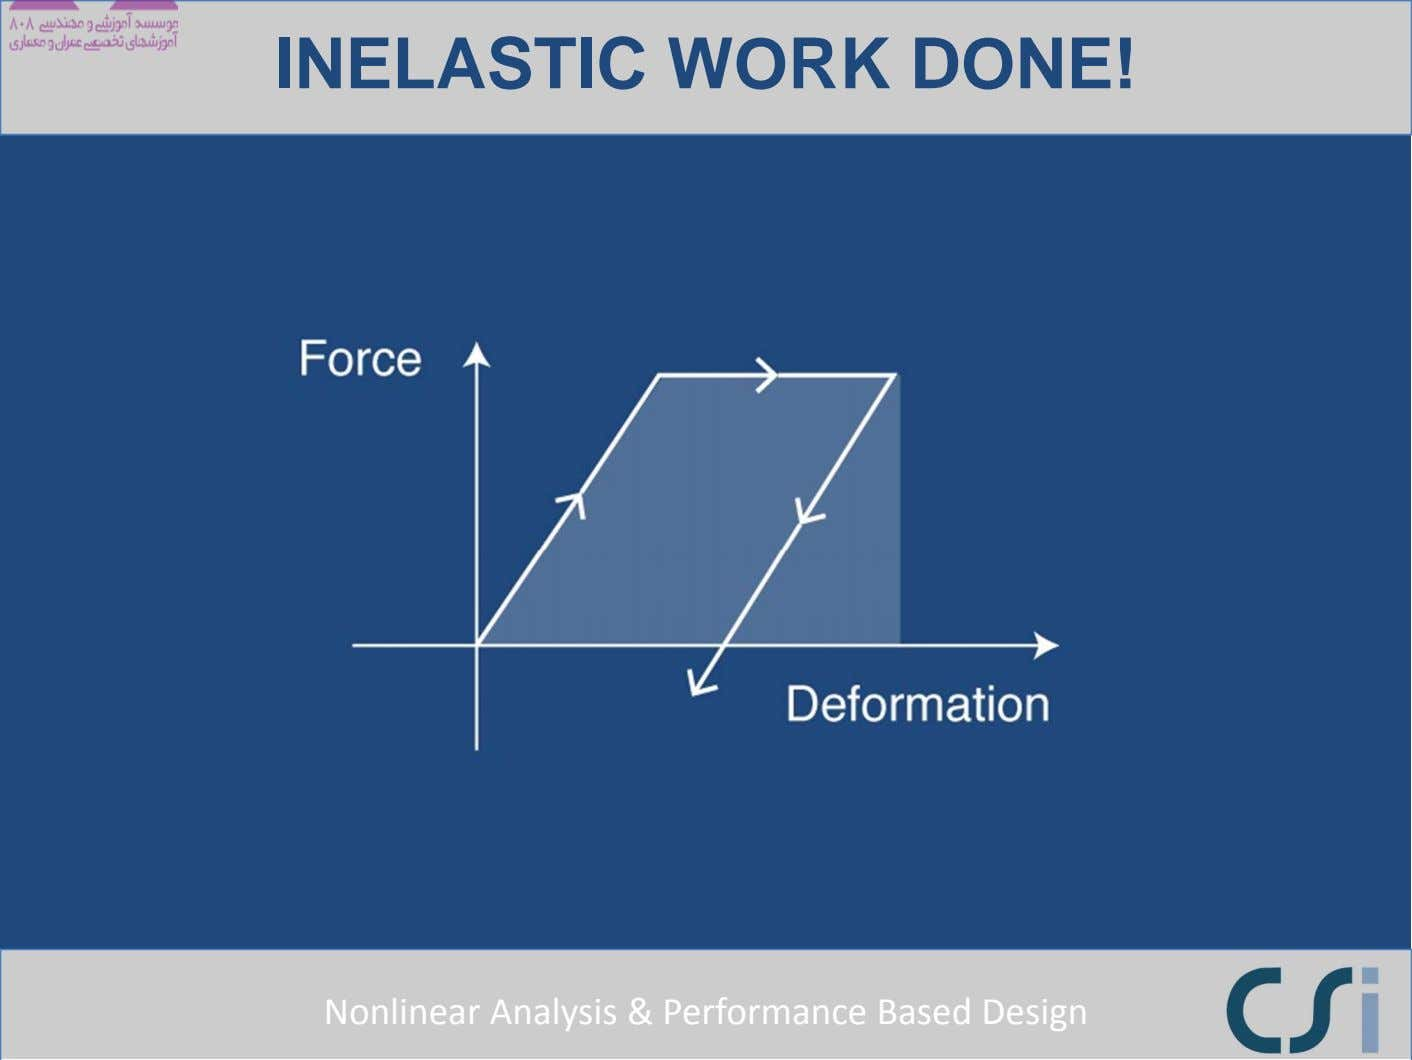 INELASTIC WORK DONE! Nonlinear Analysis & Performance Based Design